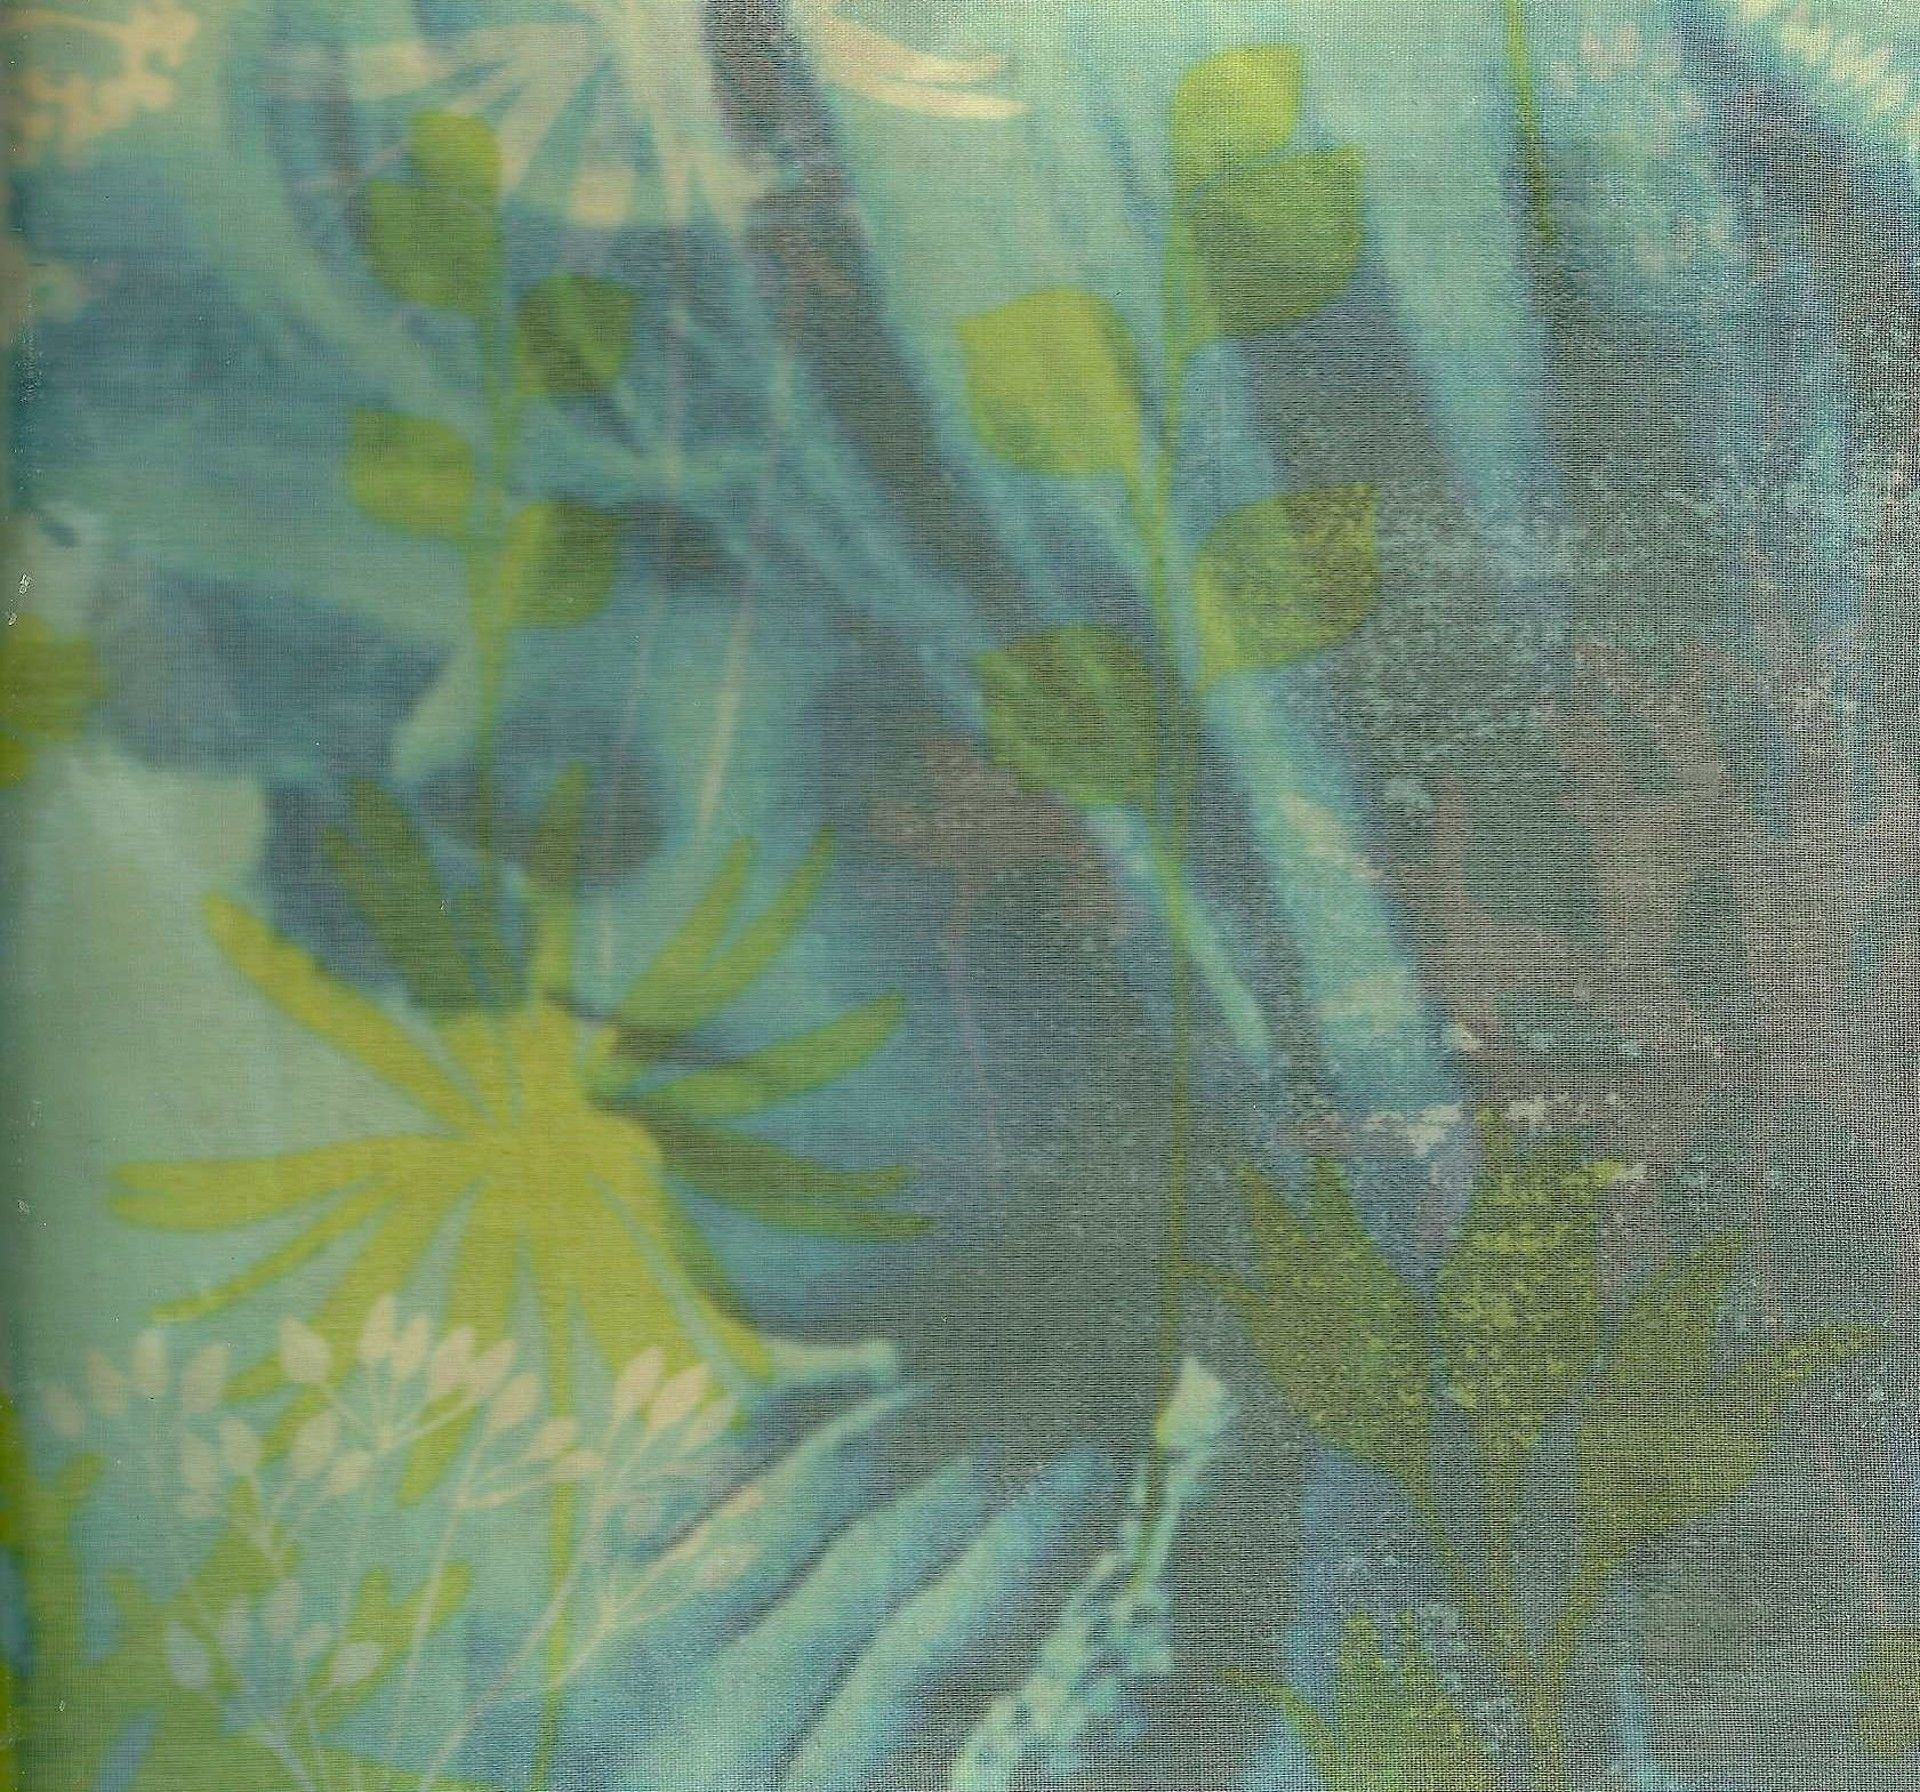 Picture of a woman covered by fabric of blue and green flowers